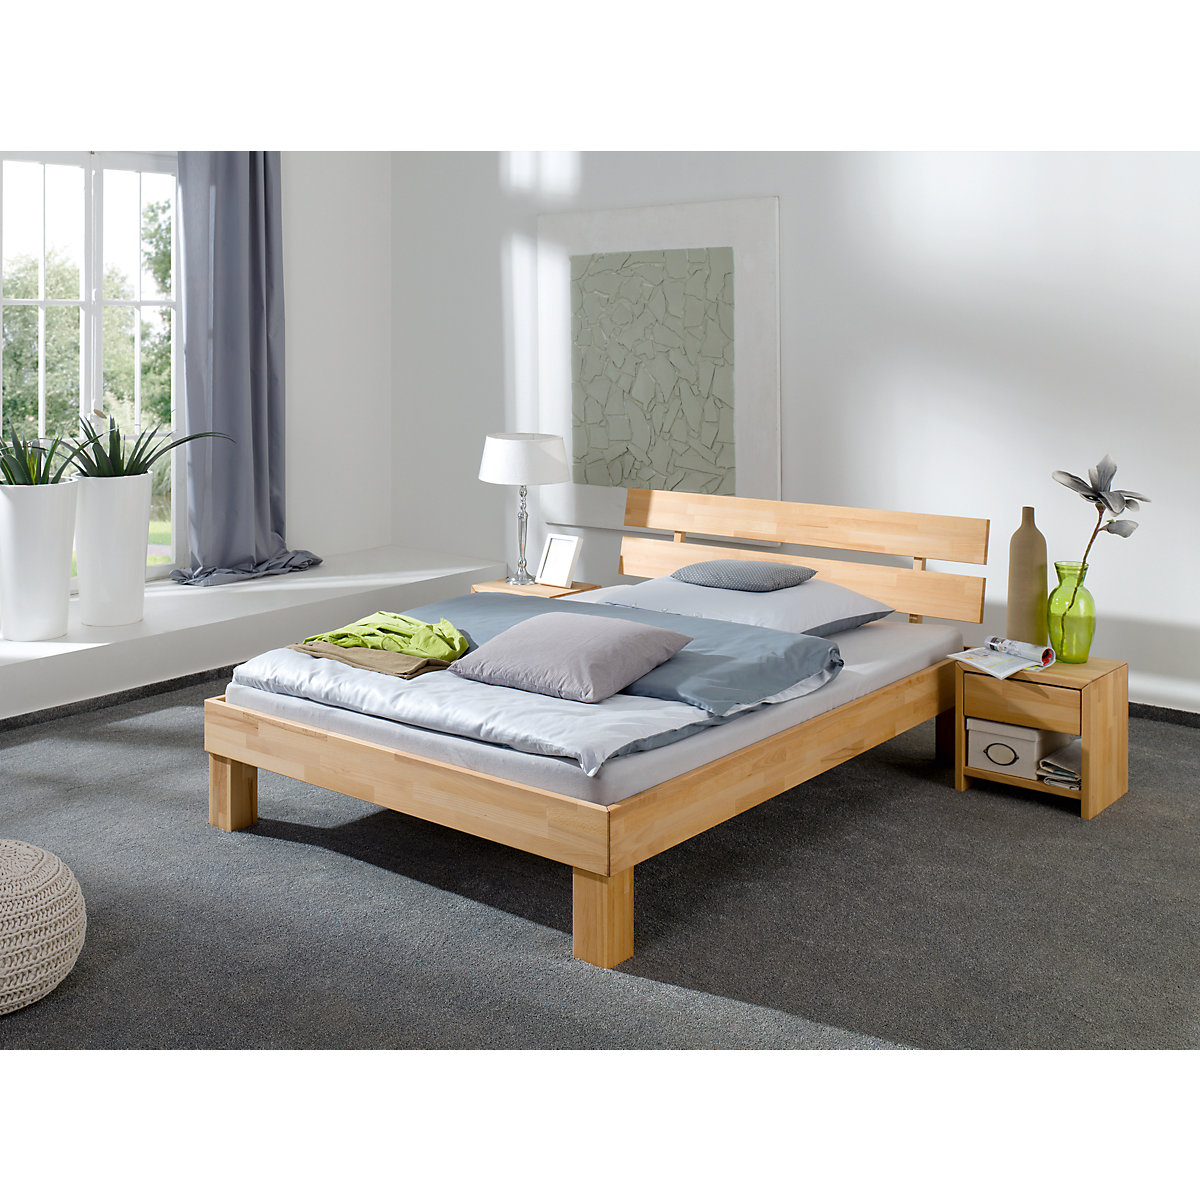 futonbett julia kernbuche massiv ge lt 90 x 200 cm holzfarben relita yomonda. Black Bedroom Furniture Sets. Home Design Ideas